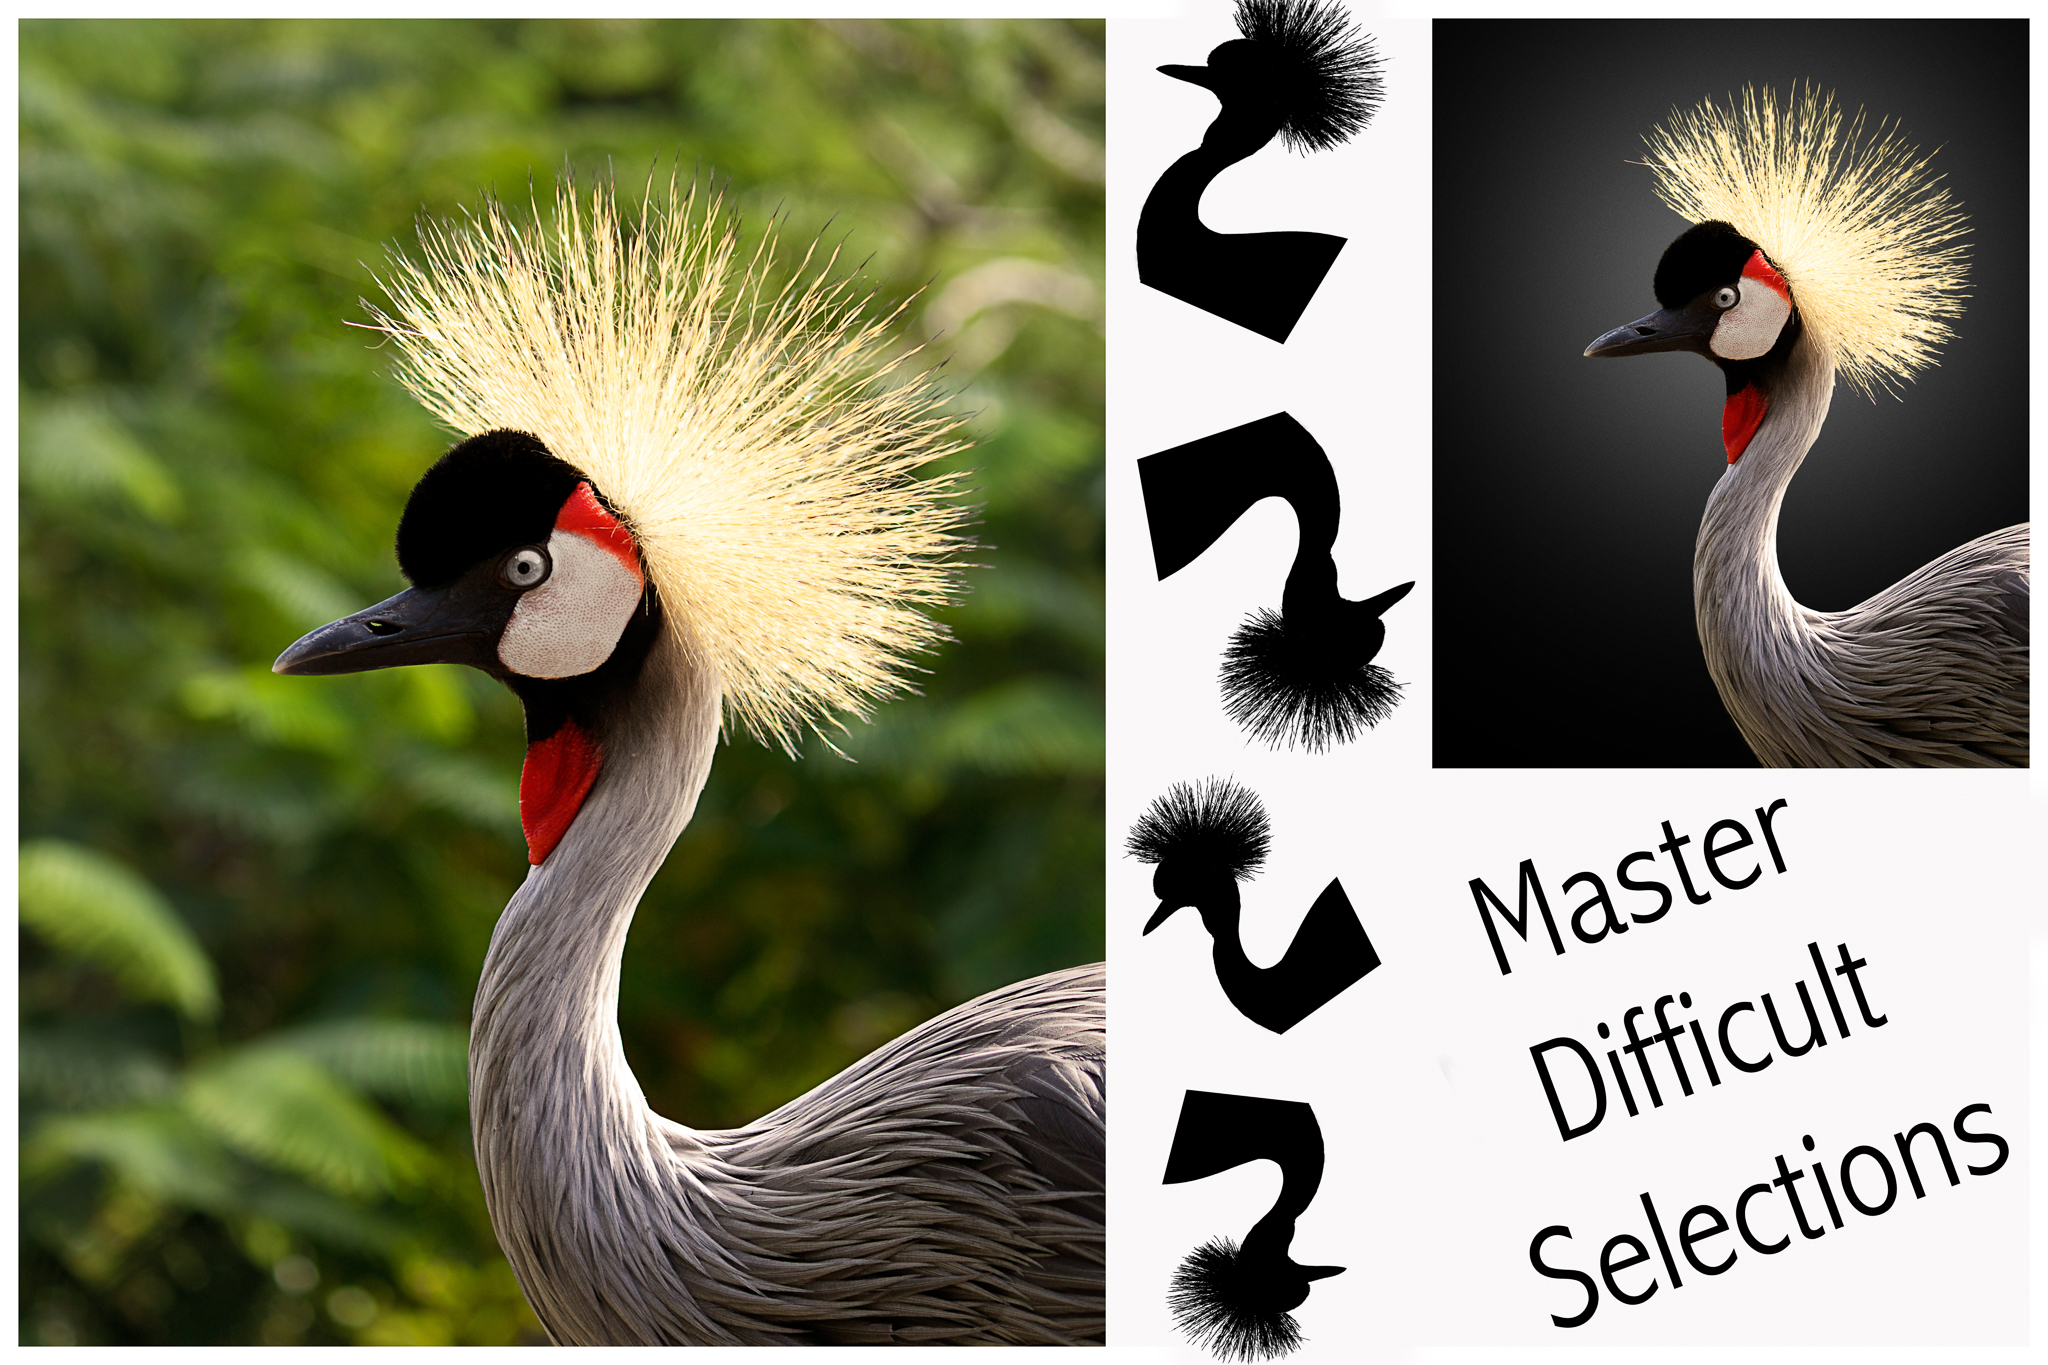 Photoshop Tuition and Lessons in Grimsby, difficult selections